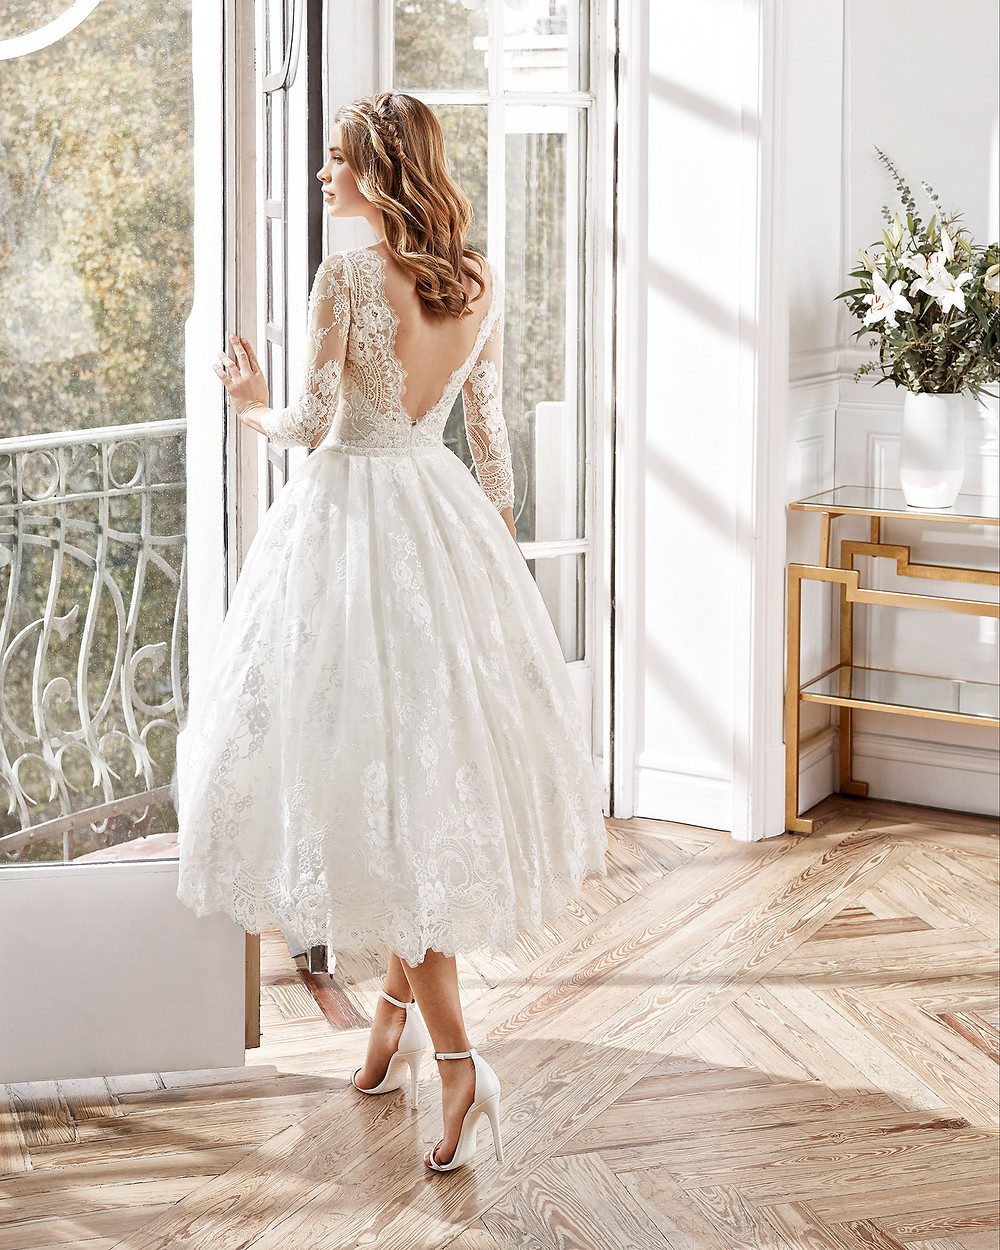 An Aire Barcelona 2020 romantic lace tea length wedding dress with a low back and long sleeves